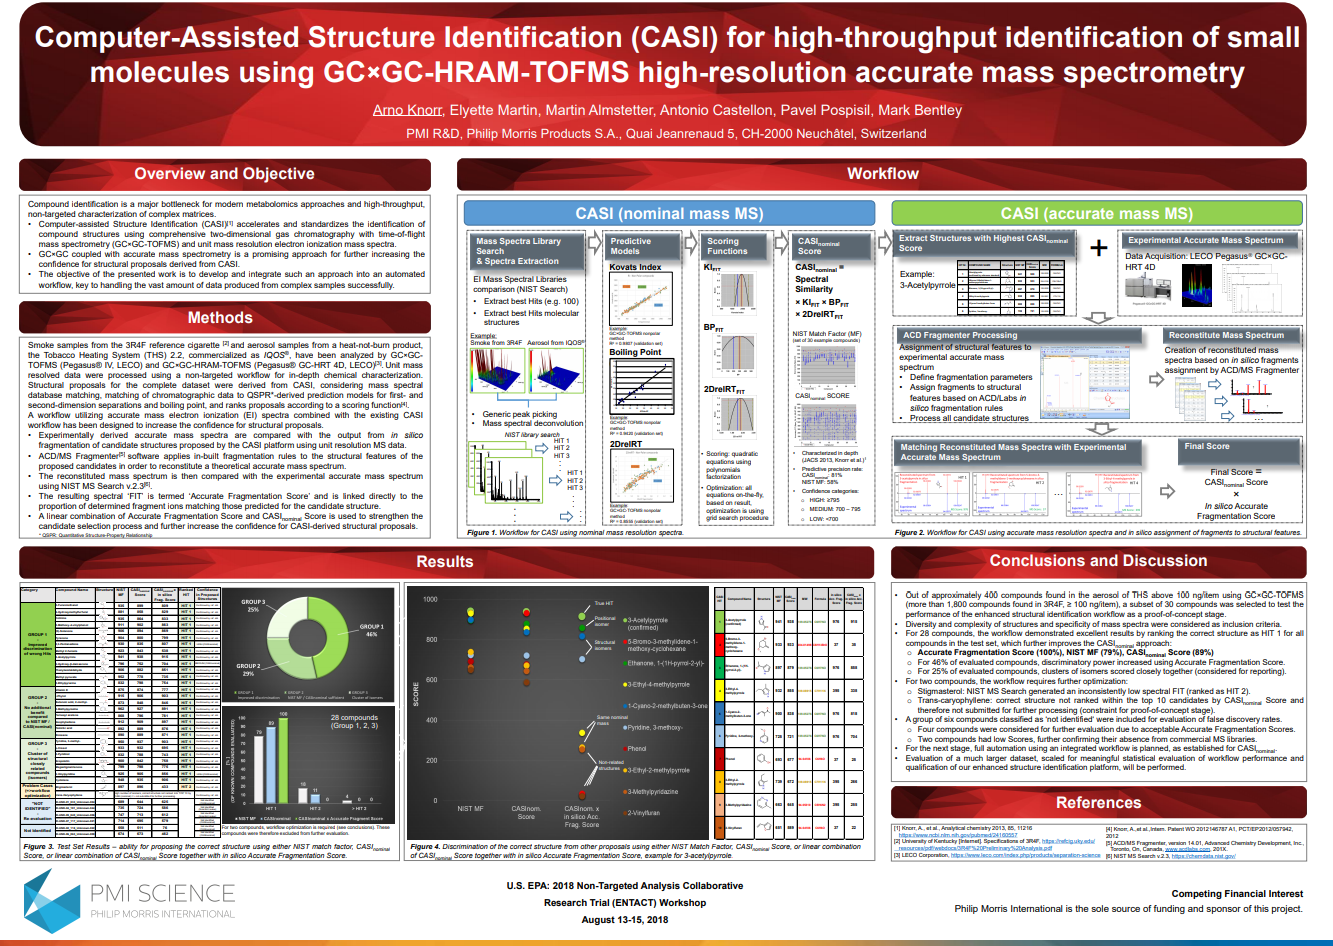 Computer-Assisted Structure Identification (CASI) for high-throughput identification of small molecules